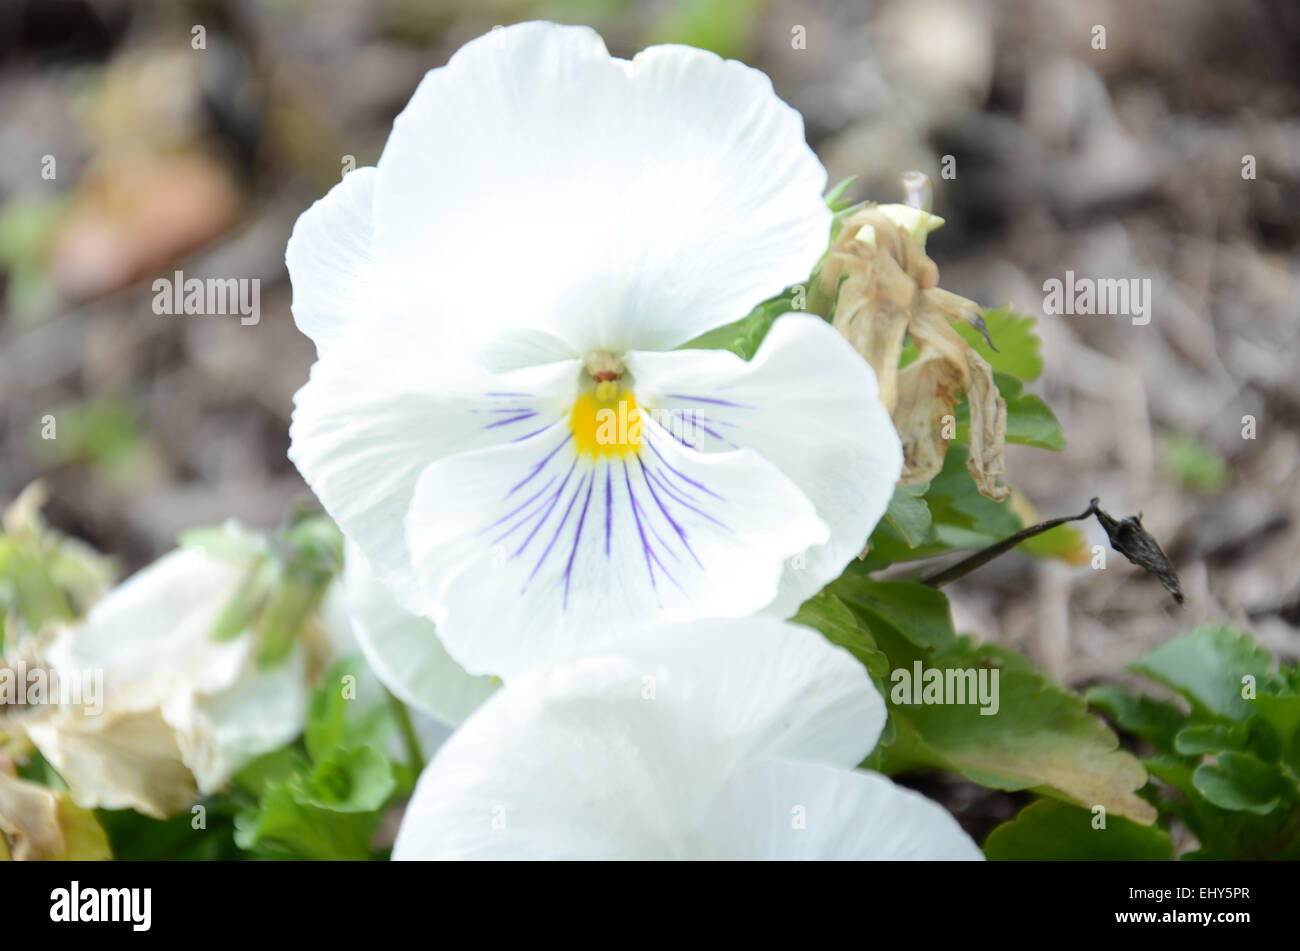 White flower with purple center stock photos white flower with a white flower with purple veins and a yellow center stock image mightylinksfo